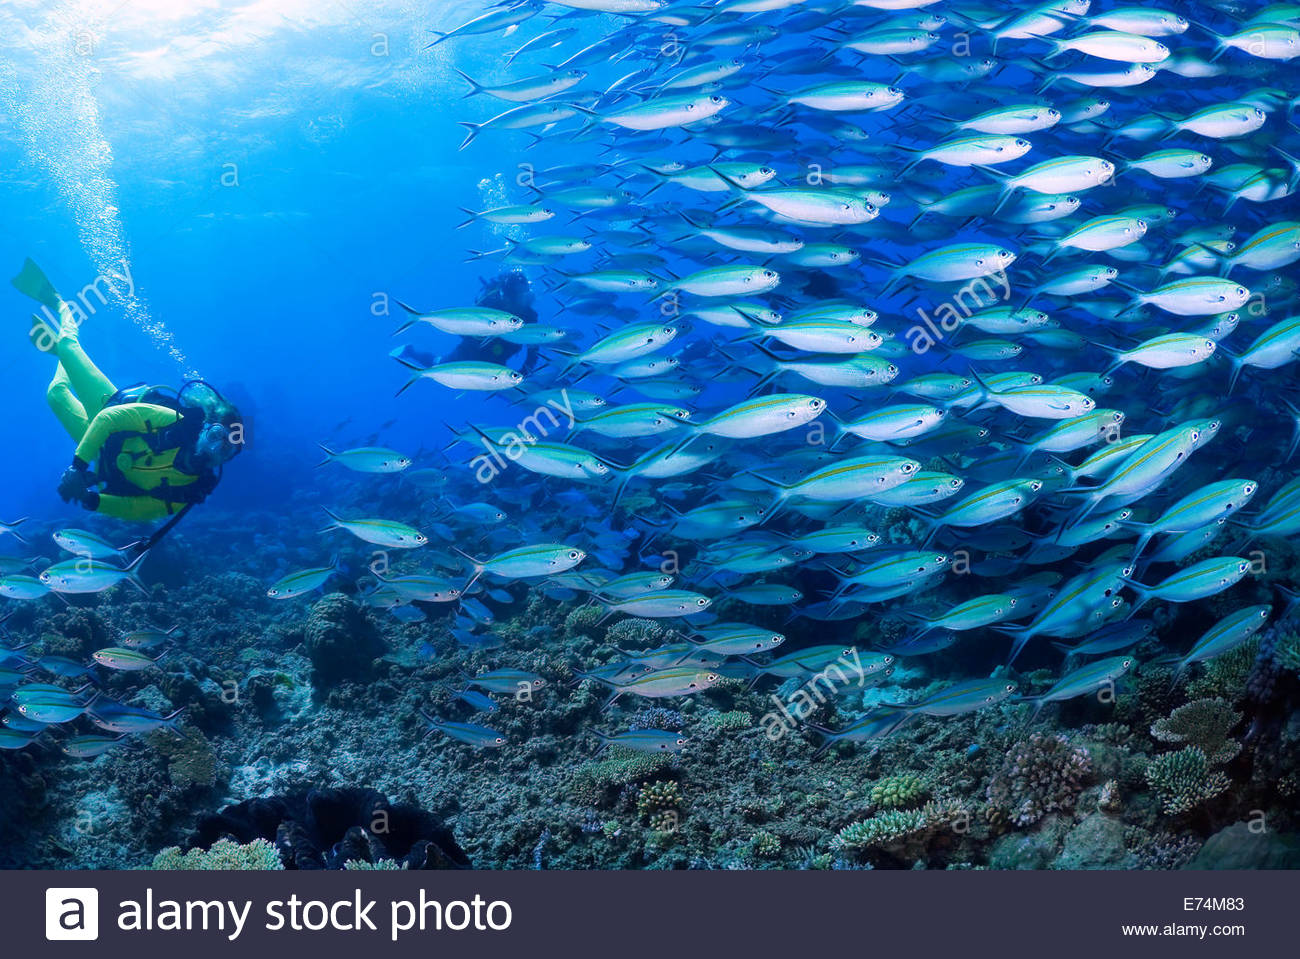 Scuba diving with school of fish Stock Photo